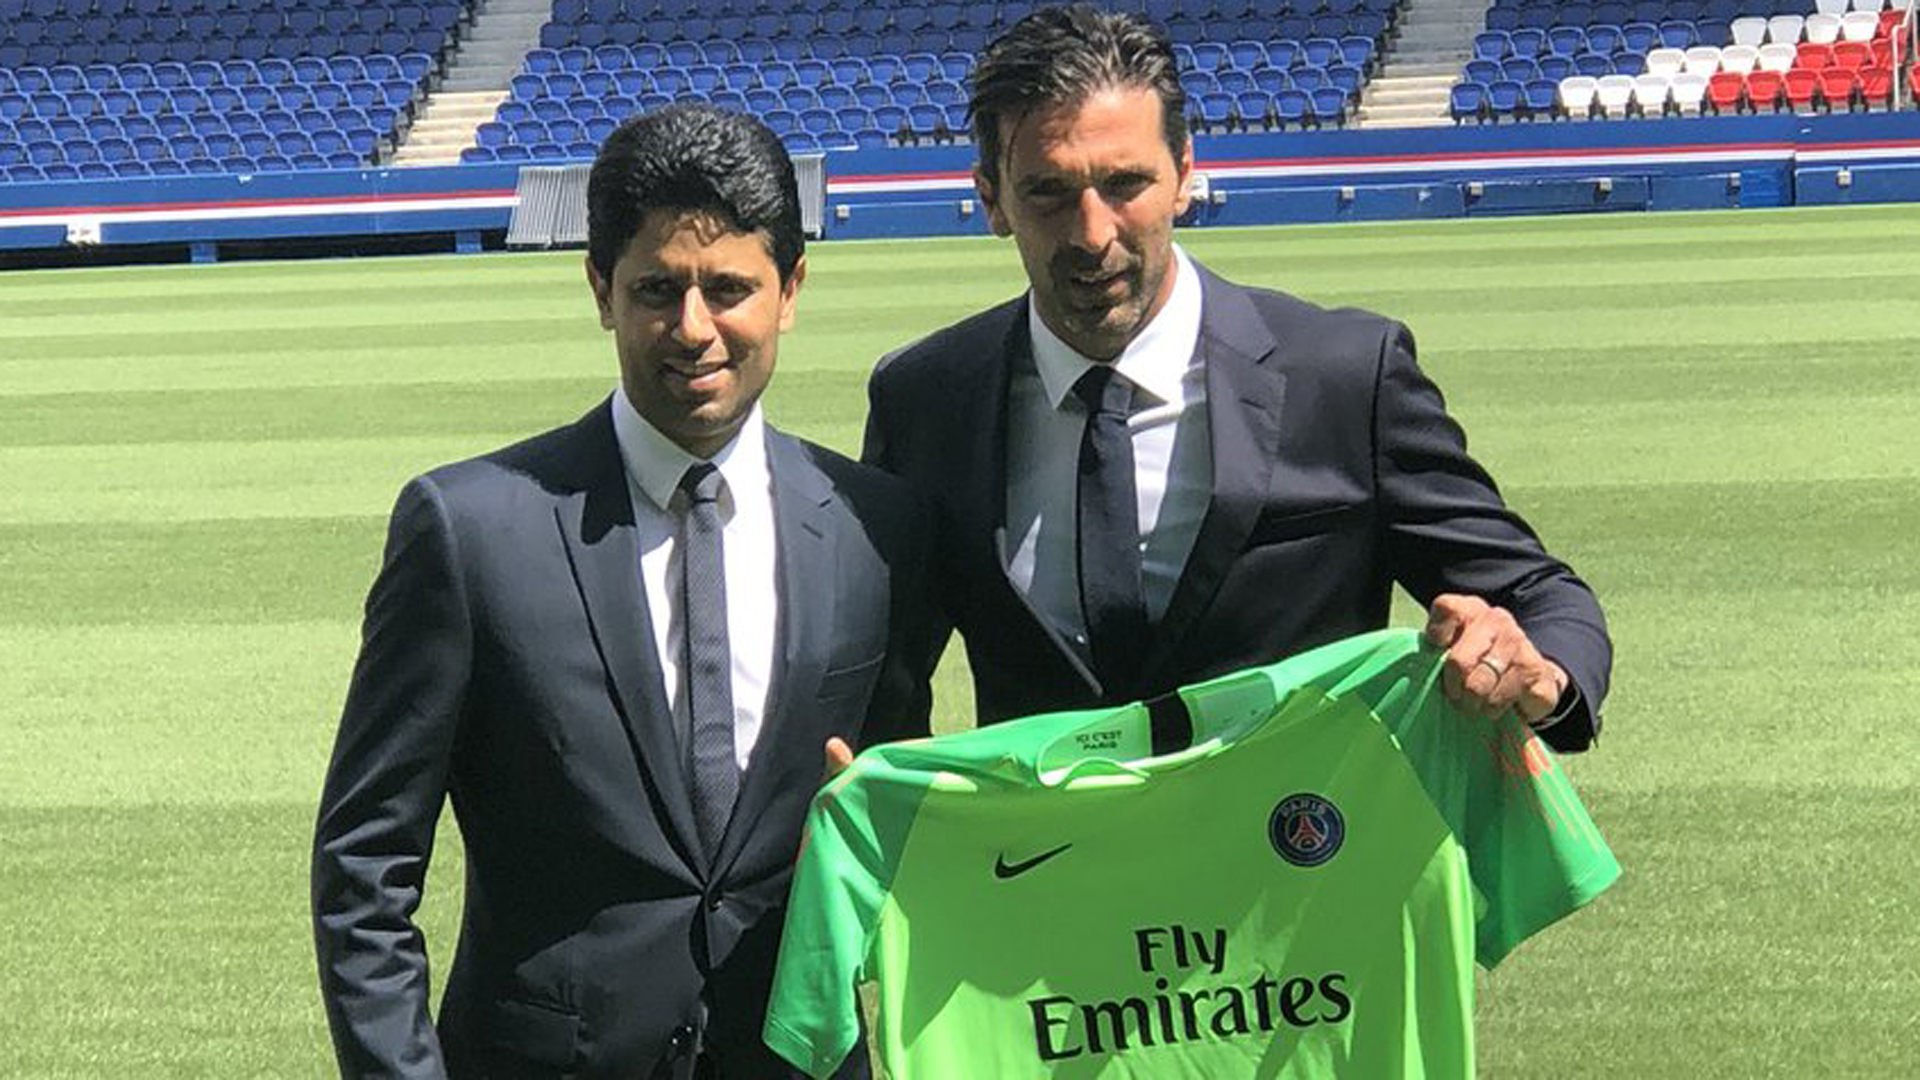 Buffon says thrilled, motivated by joining PSG